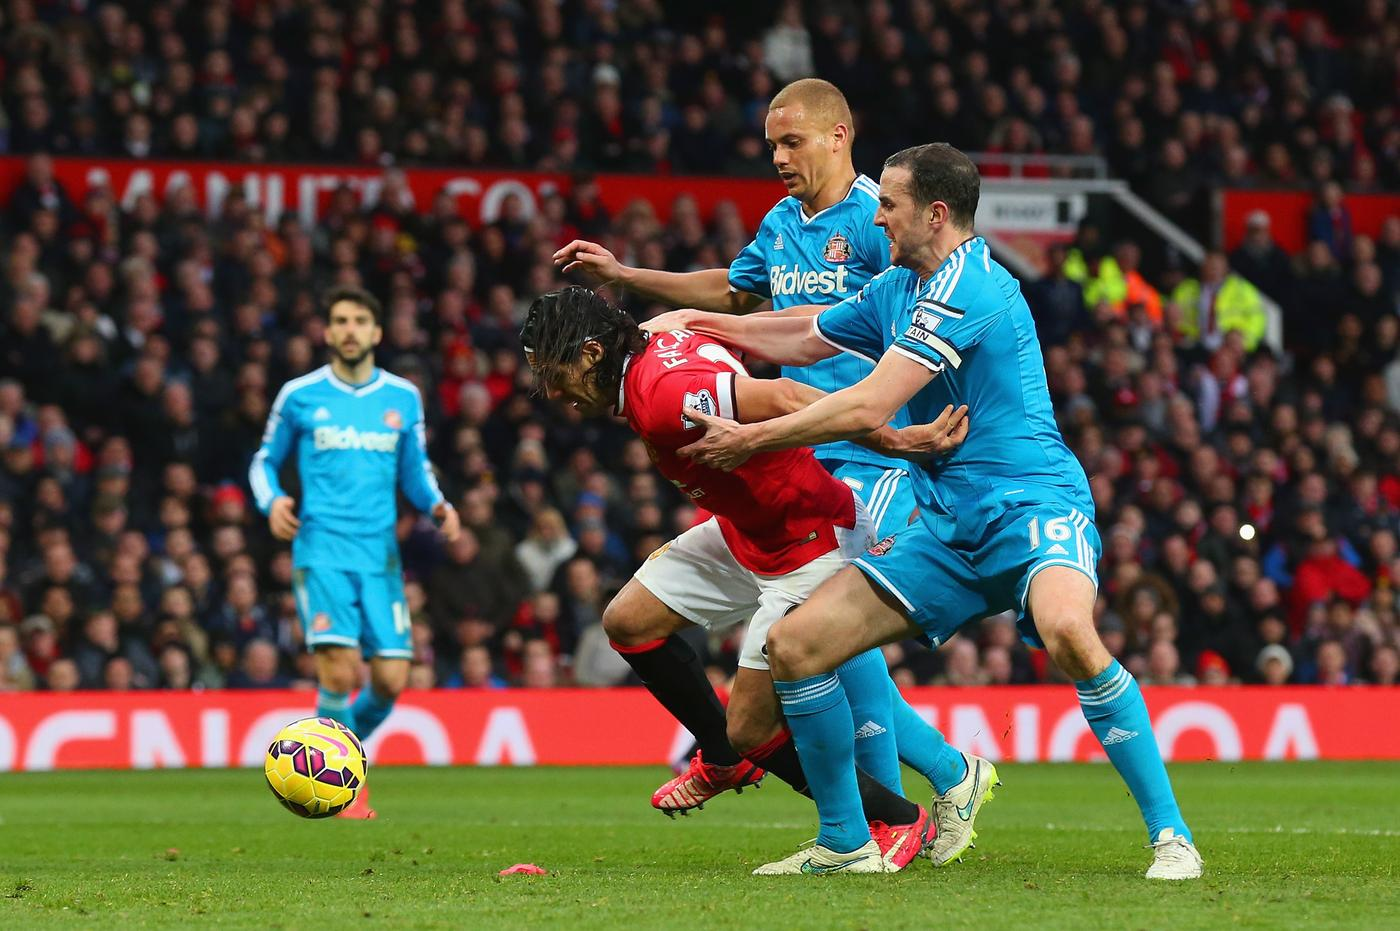 Refereeing blunder as Wes Brown sees red against Manchester United despite John O'Shea making foul